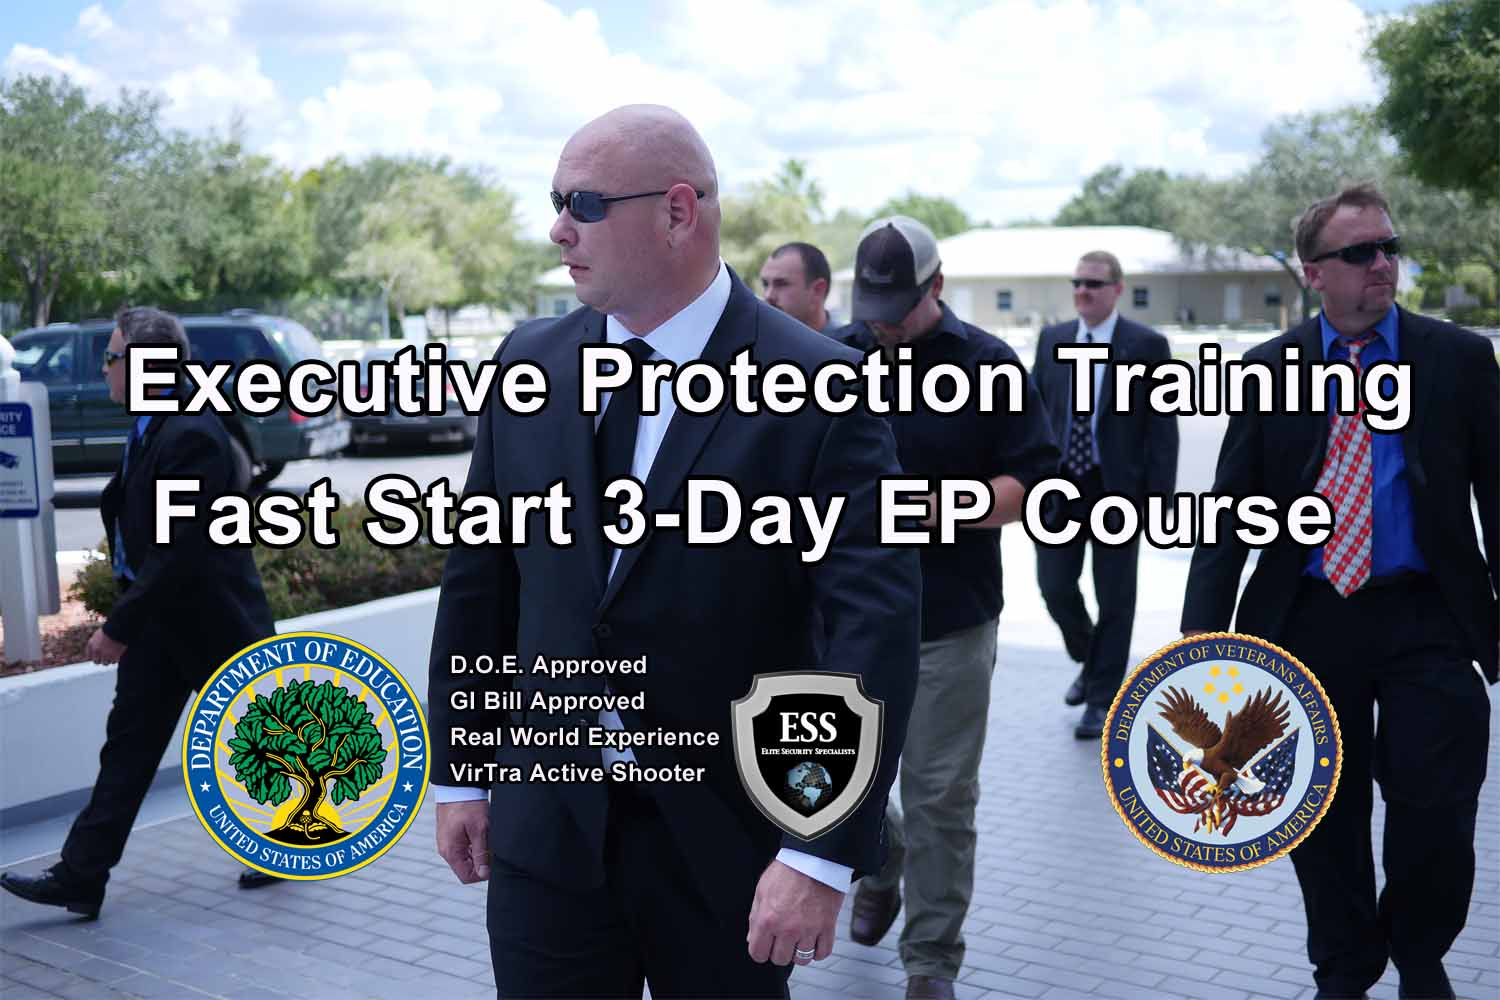 GI Bill Approved Executive Protection Training - South Carolina - 3 Day Fast Start